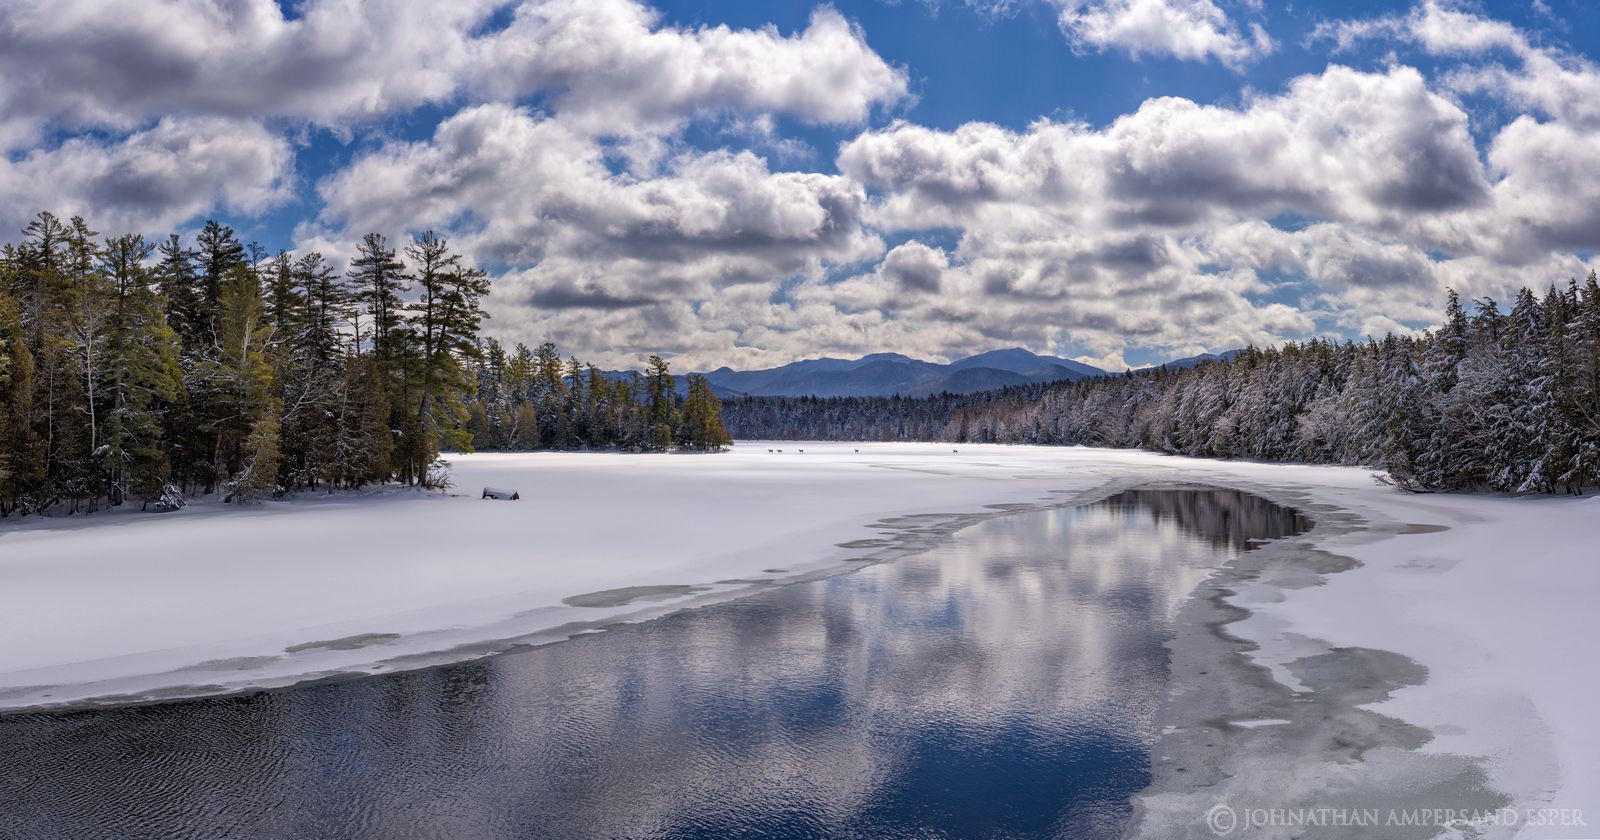 Second Pond,Saranac Lakes,Second Pond boat launch,whitetail deer,deer,crossing,spring,ice,ice channel,water channel,late winter...